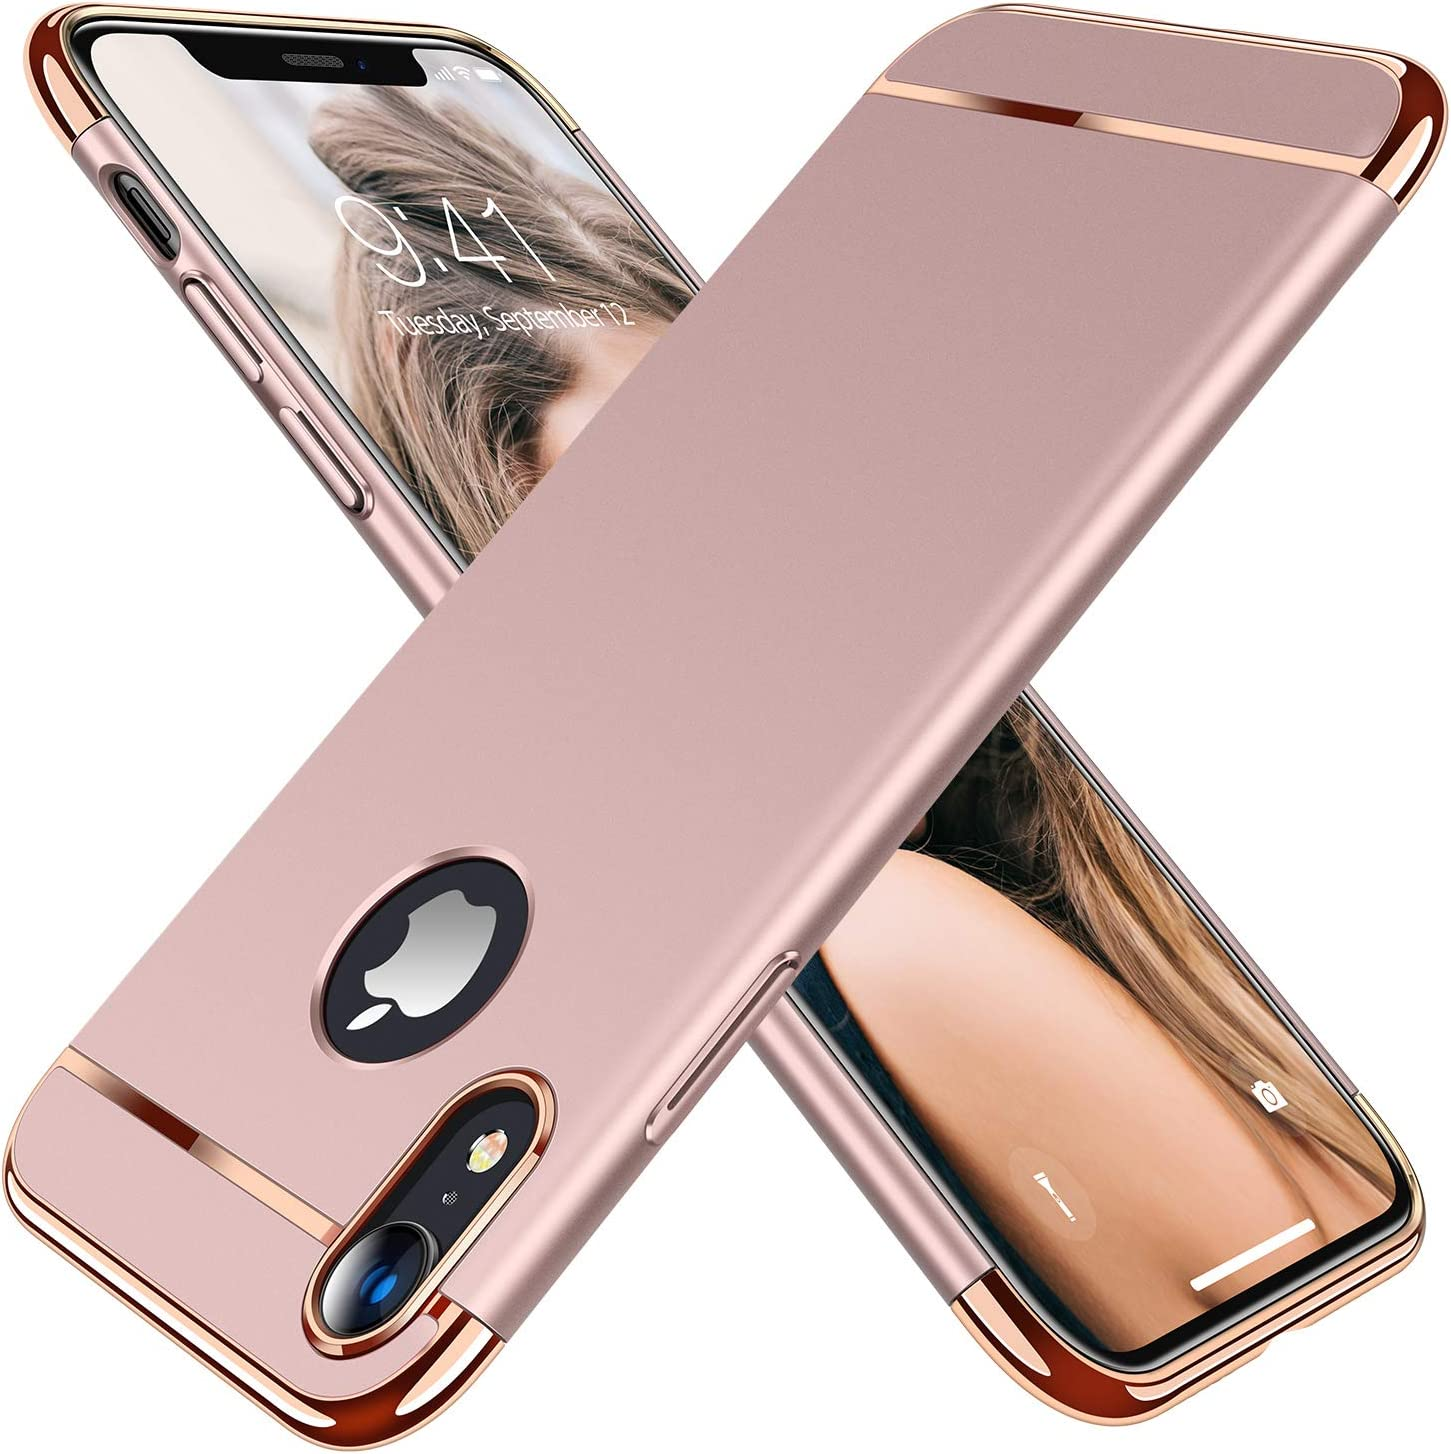 TORRAS Lock Series Designed for iPhone XR Case, 3-in-1 Luxury Hybrid Hard Plastic with Gold Trim Matte Finish Slim Thin Phone Case, Rose Gold